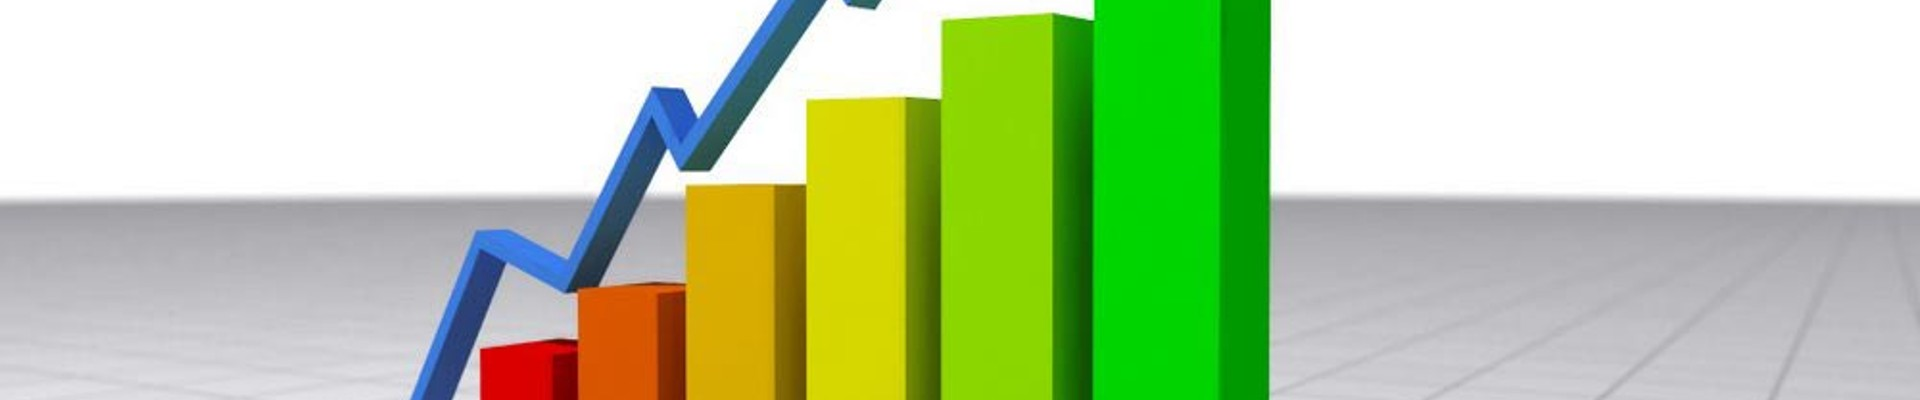 Increase your share in the residential conveyancing marketplace